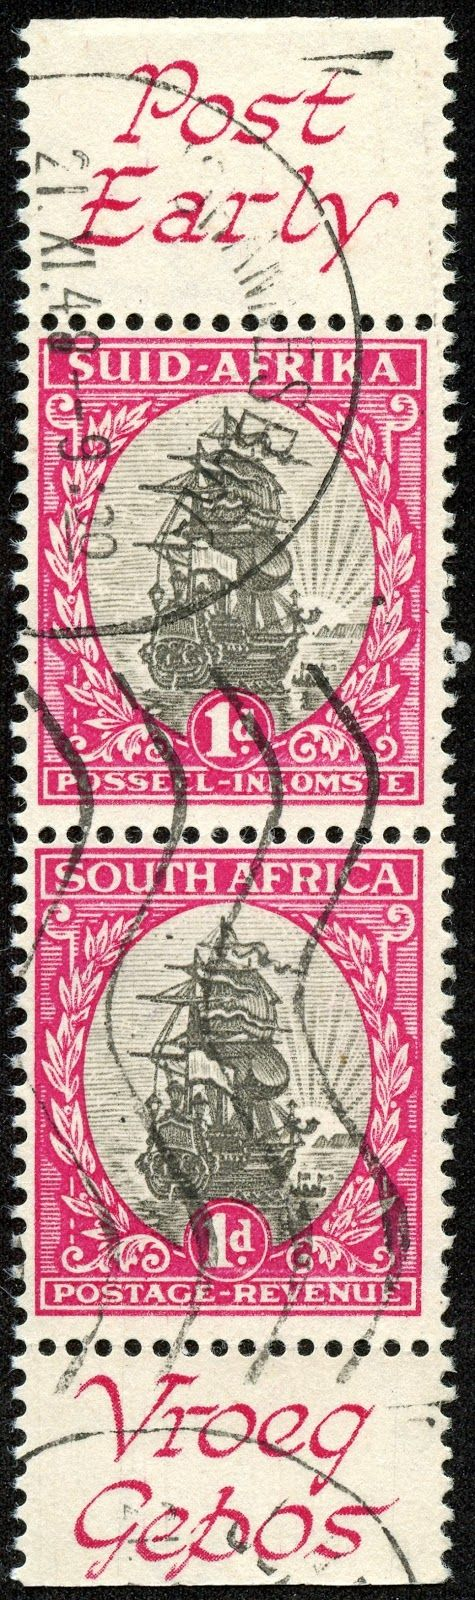 "Union of South Africa Scott 49 (SG 56h) 1d rose carmine & gray, pair ""Jan van Riebeek's Ship Drommedaris"" From 1948 booklet pane, postal slogans on margin"